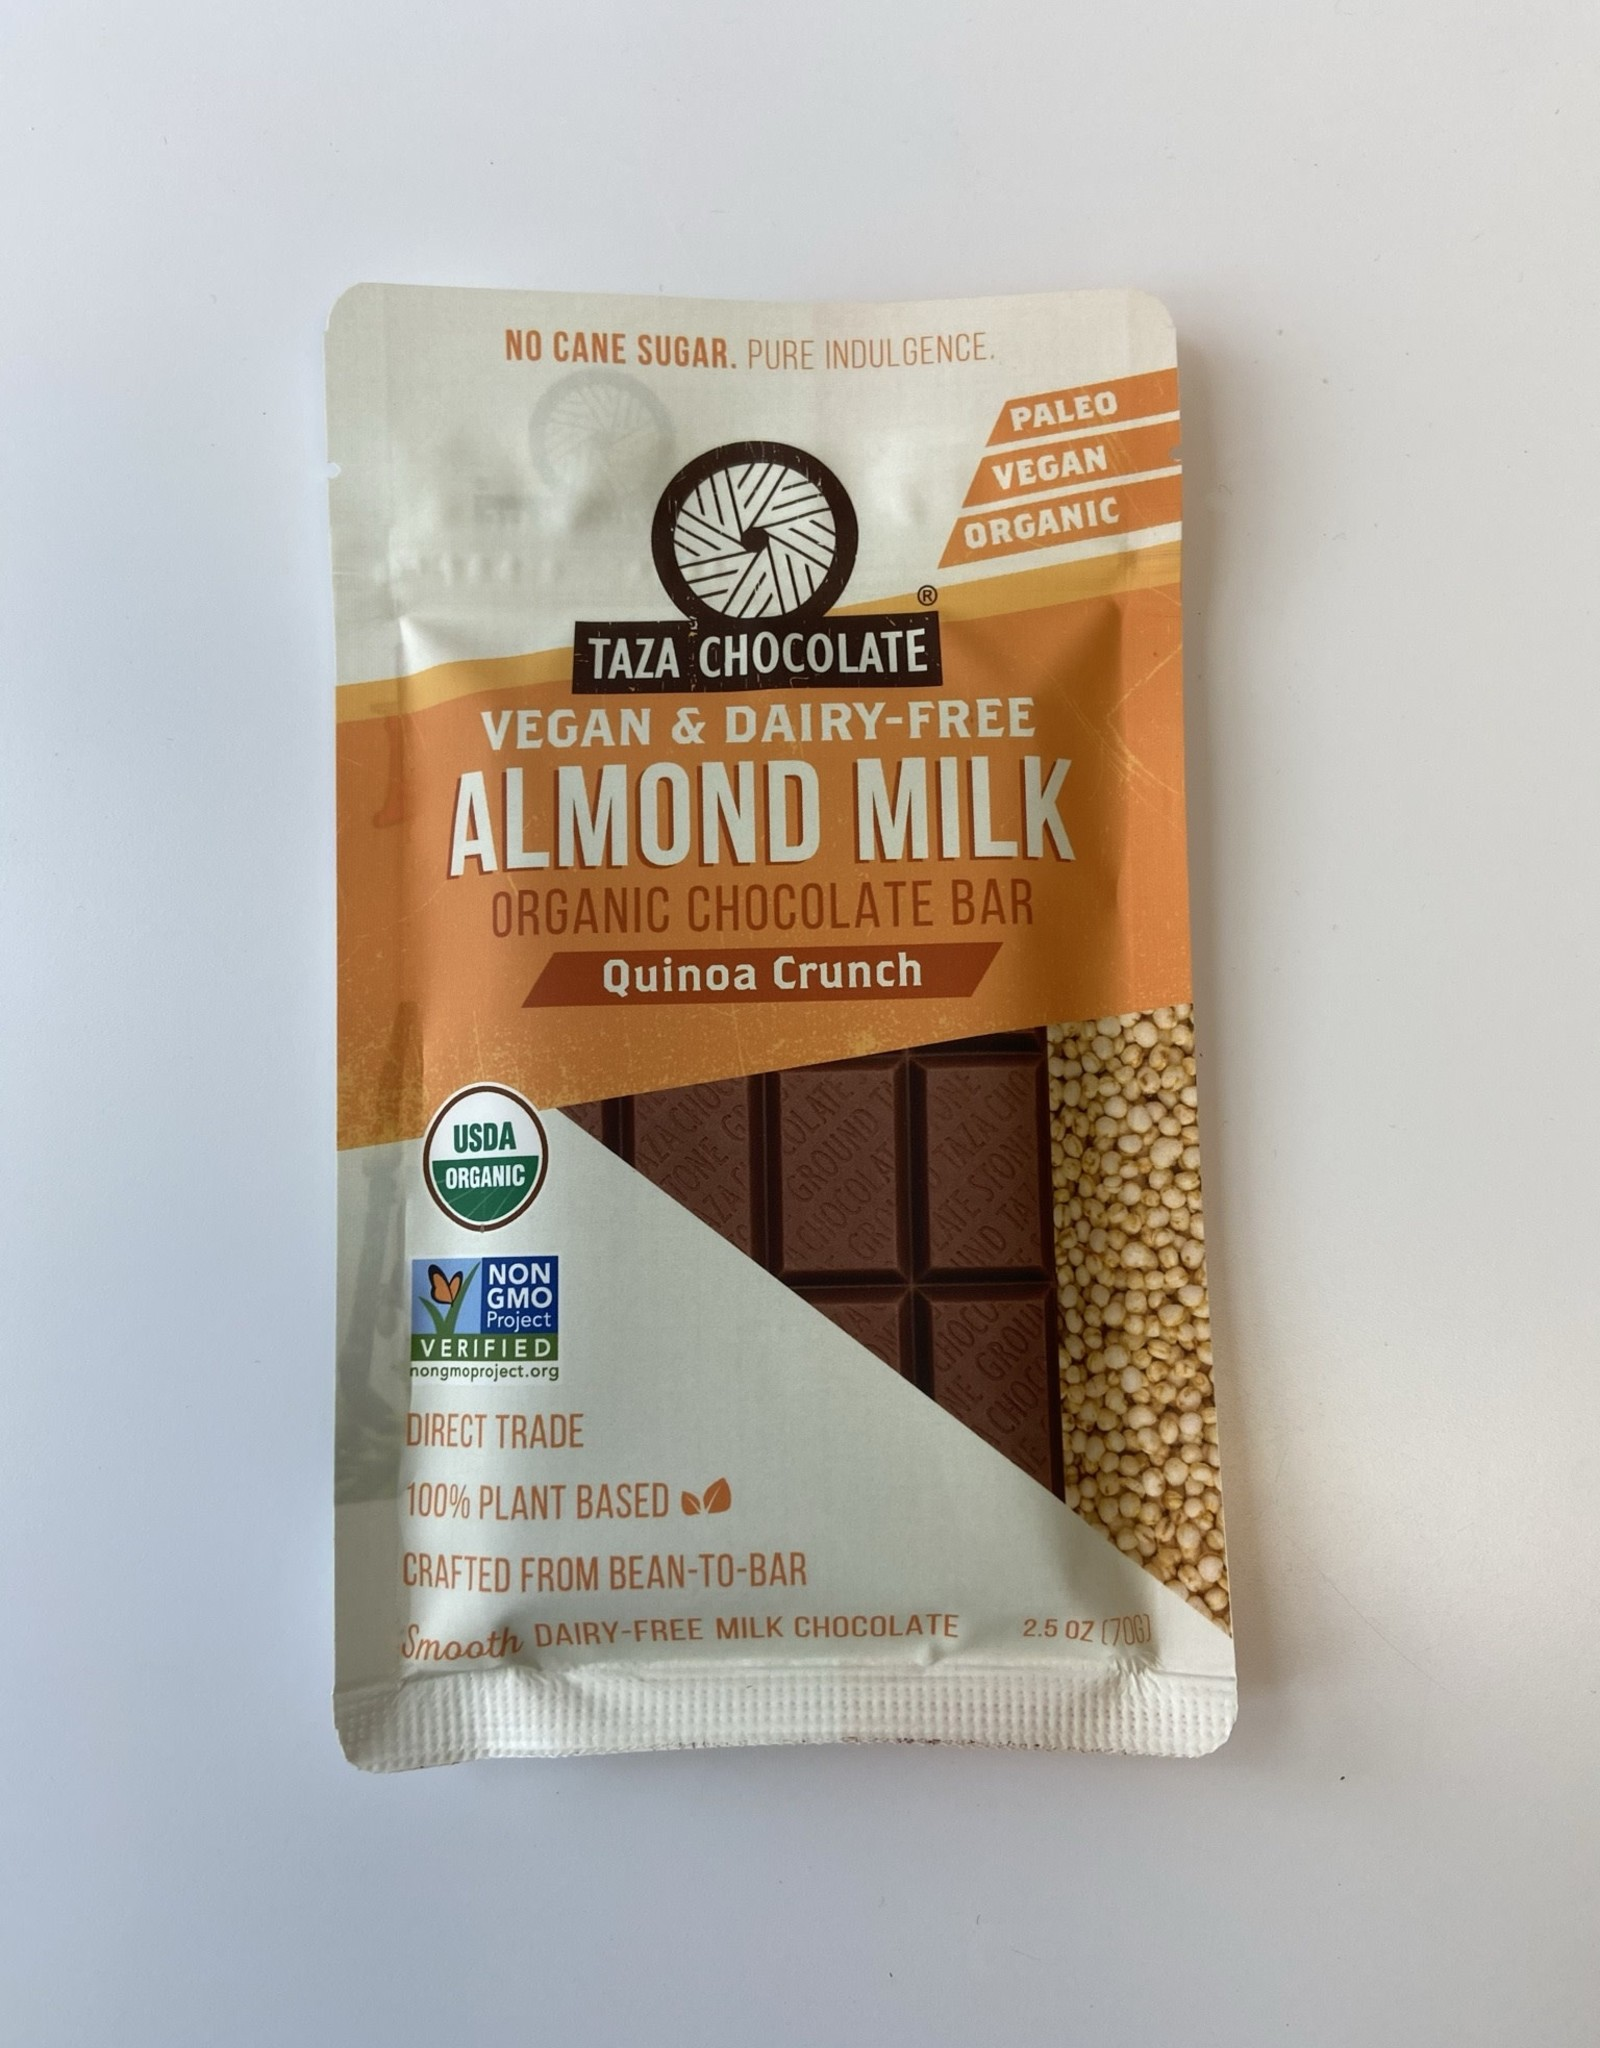 Taza Chocolate Taza Chocolate - Almond Milk Chocolate, Quinoa Crunch (70g)